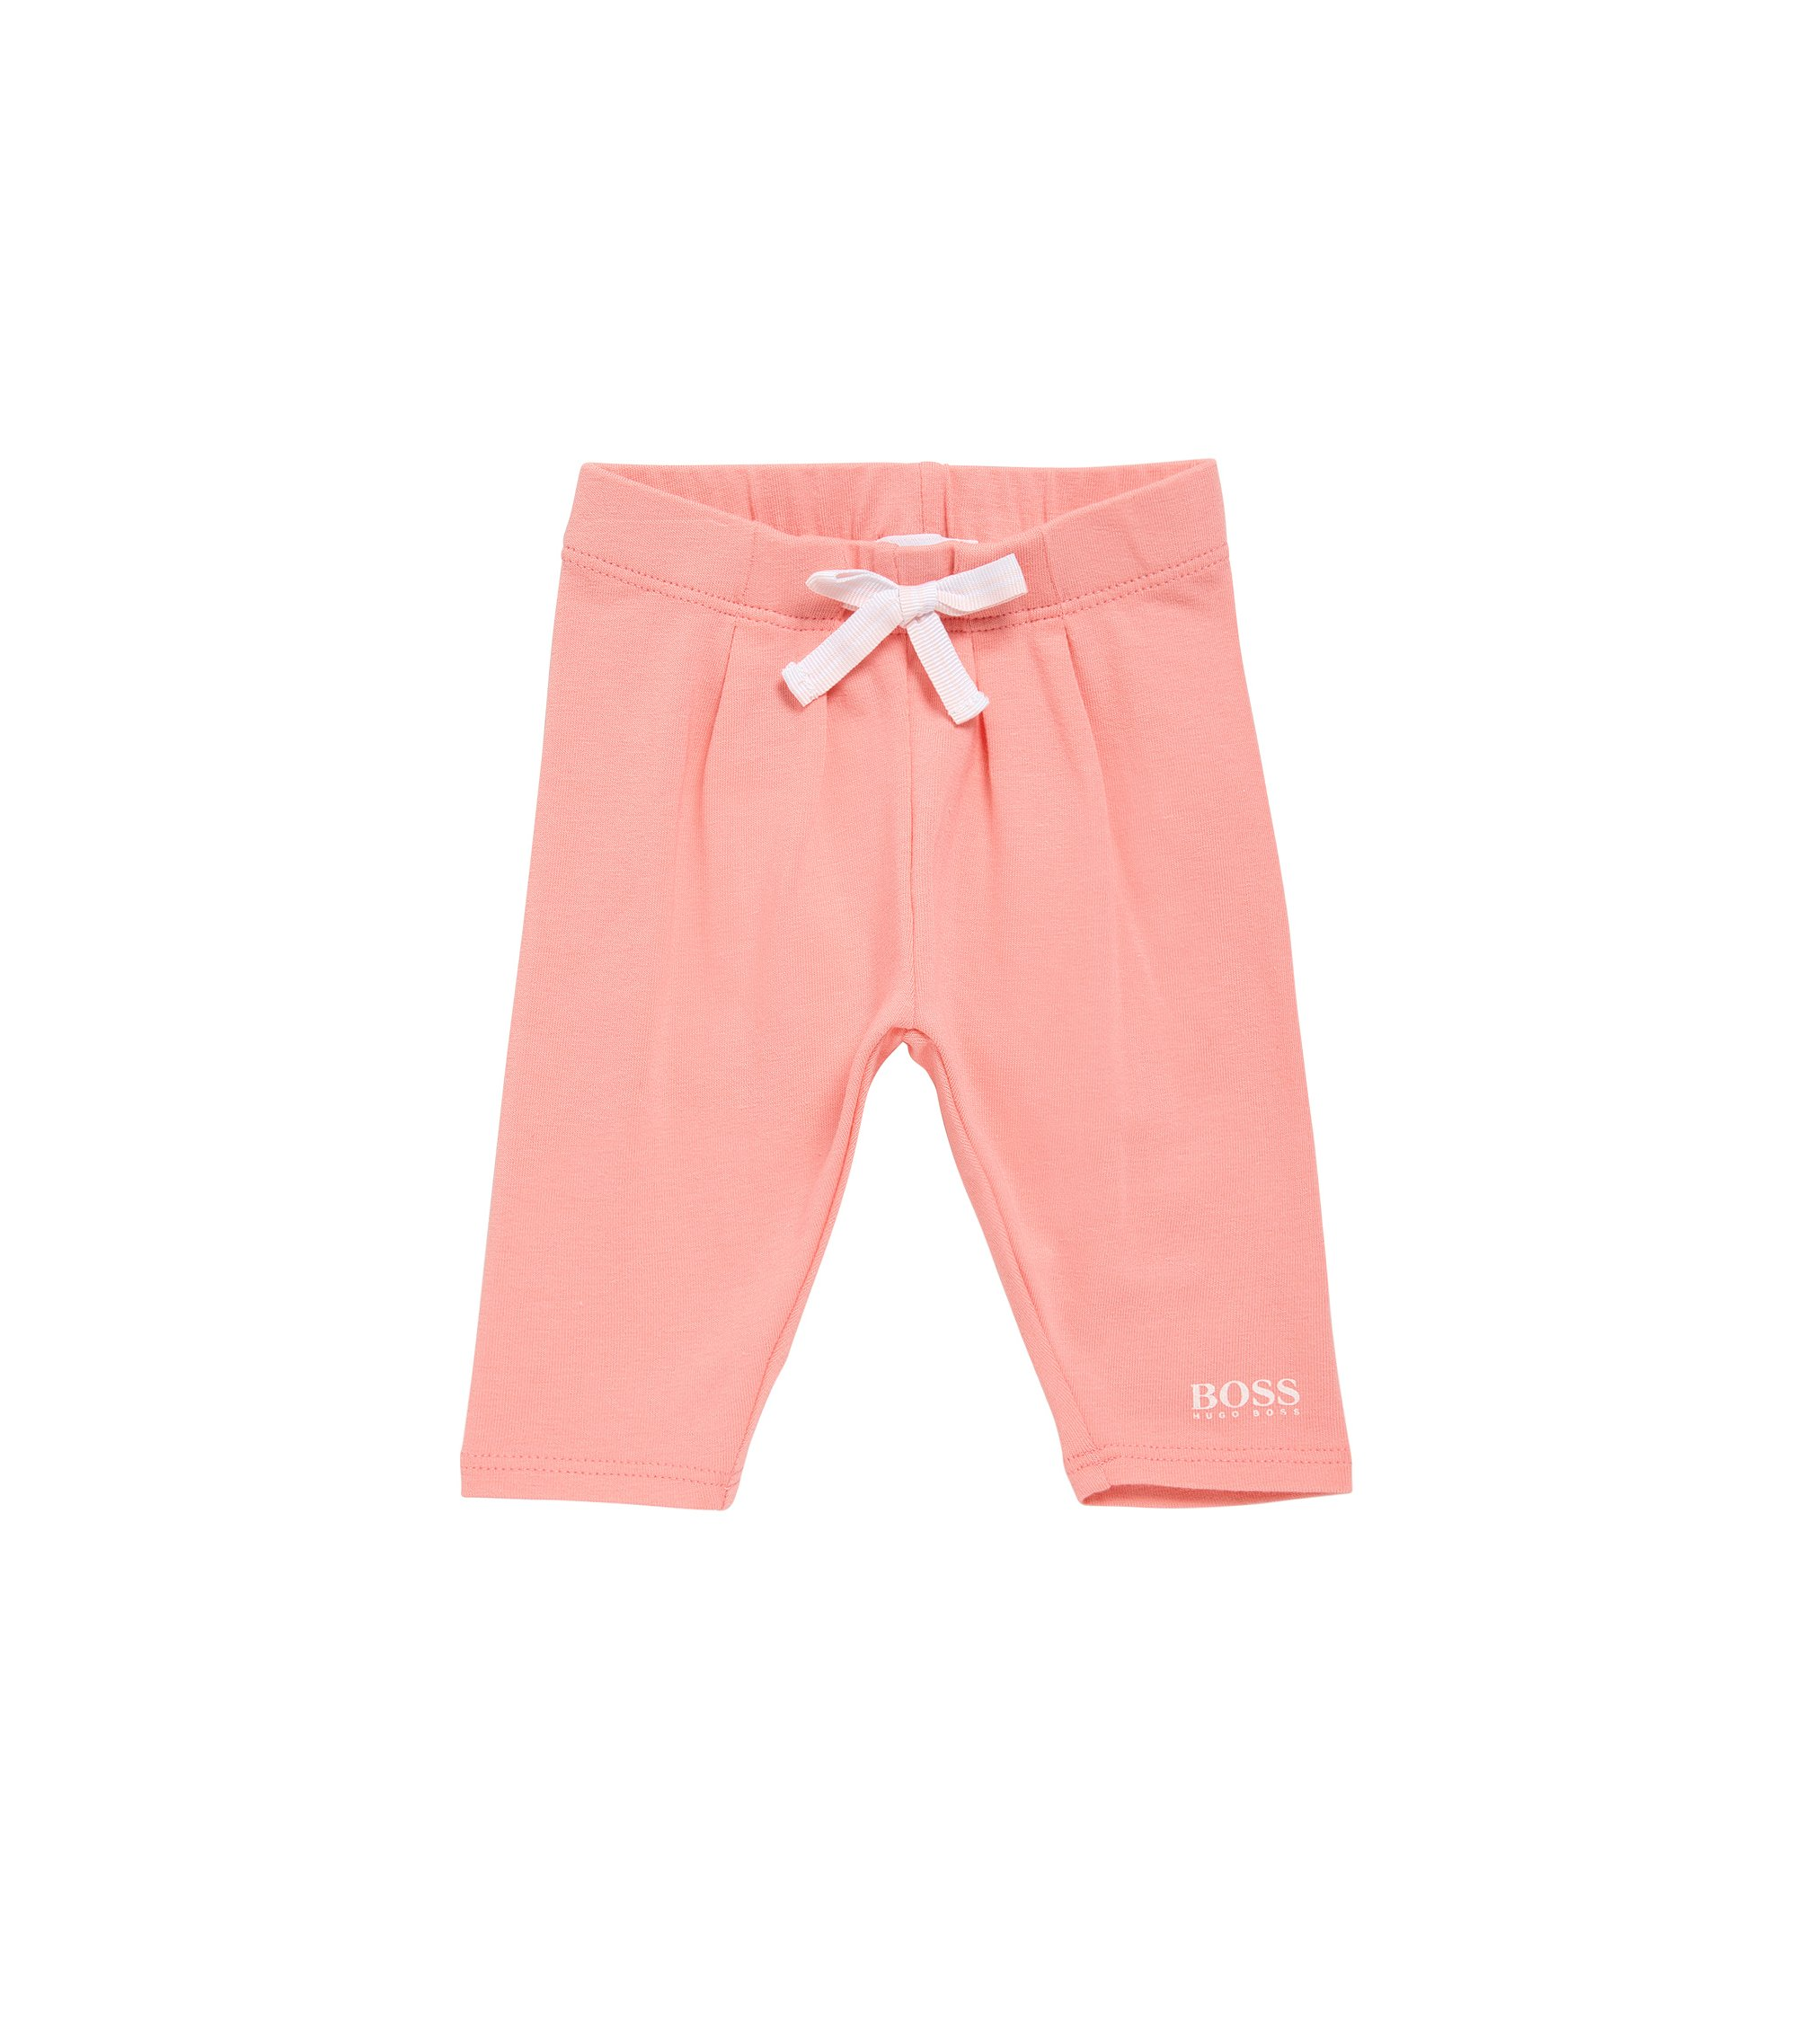 Newborn trousers in stretch cotton with bow detail: 'J94165', light pink